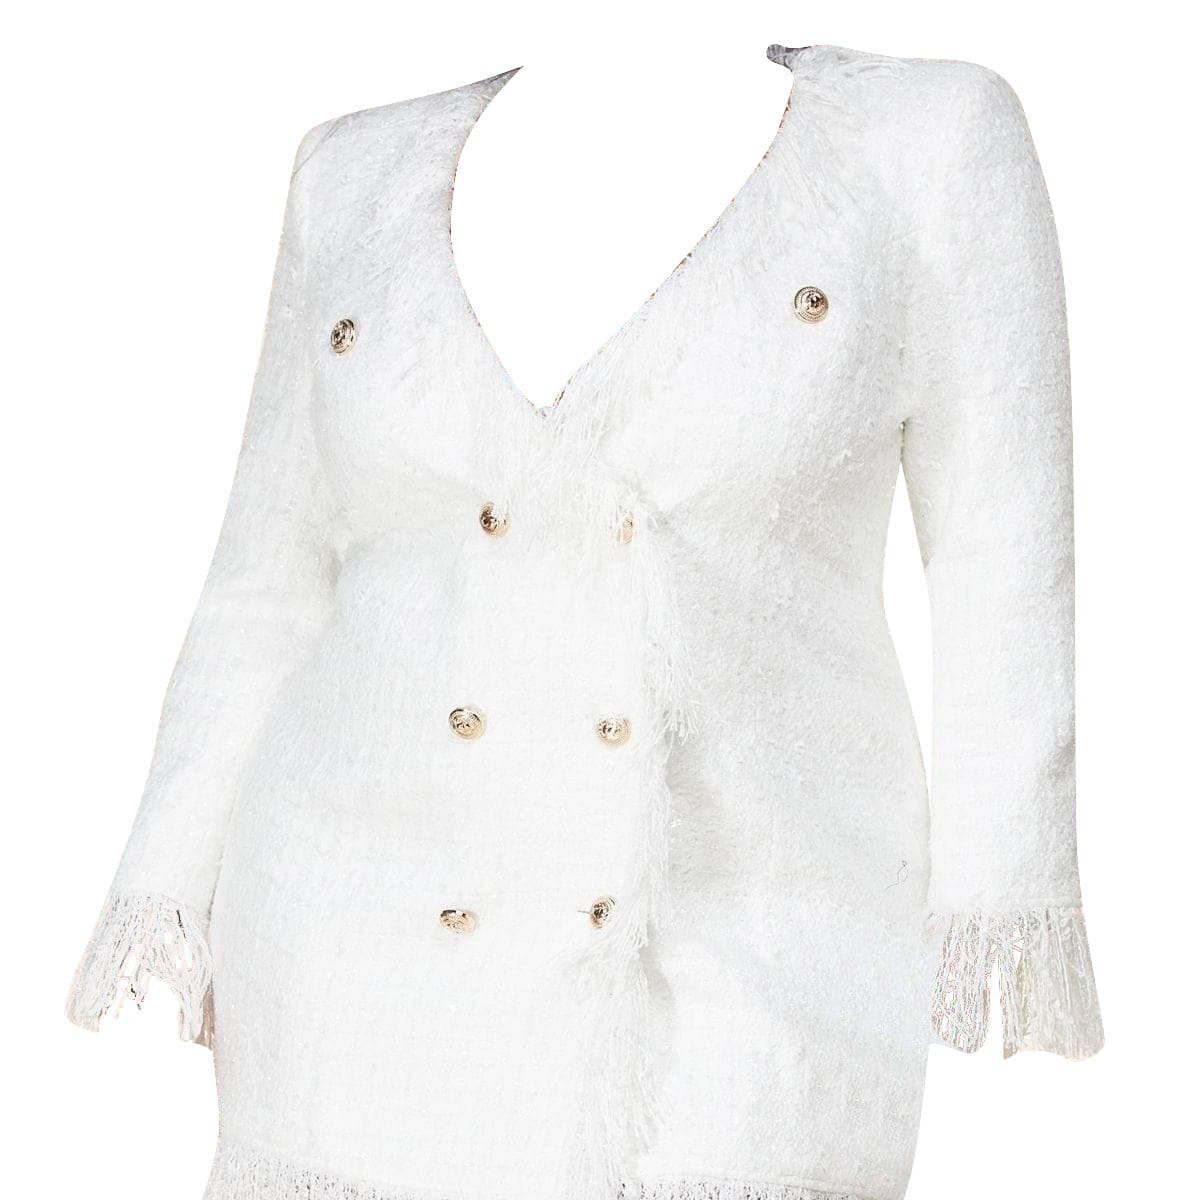 Dreamy White Tweed Blazer Dress - Posh Shoppe